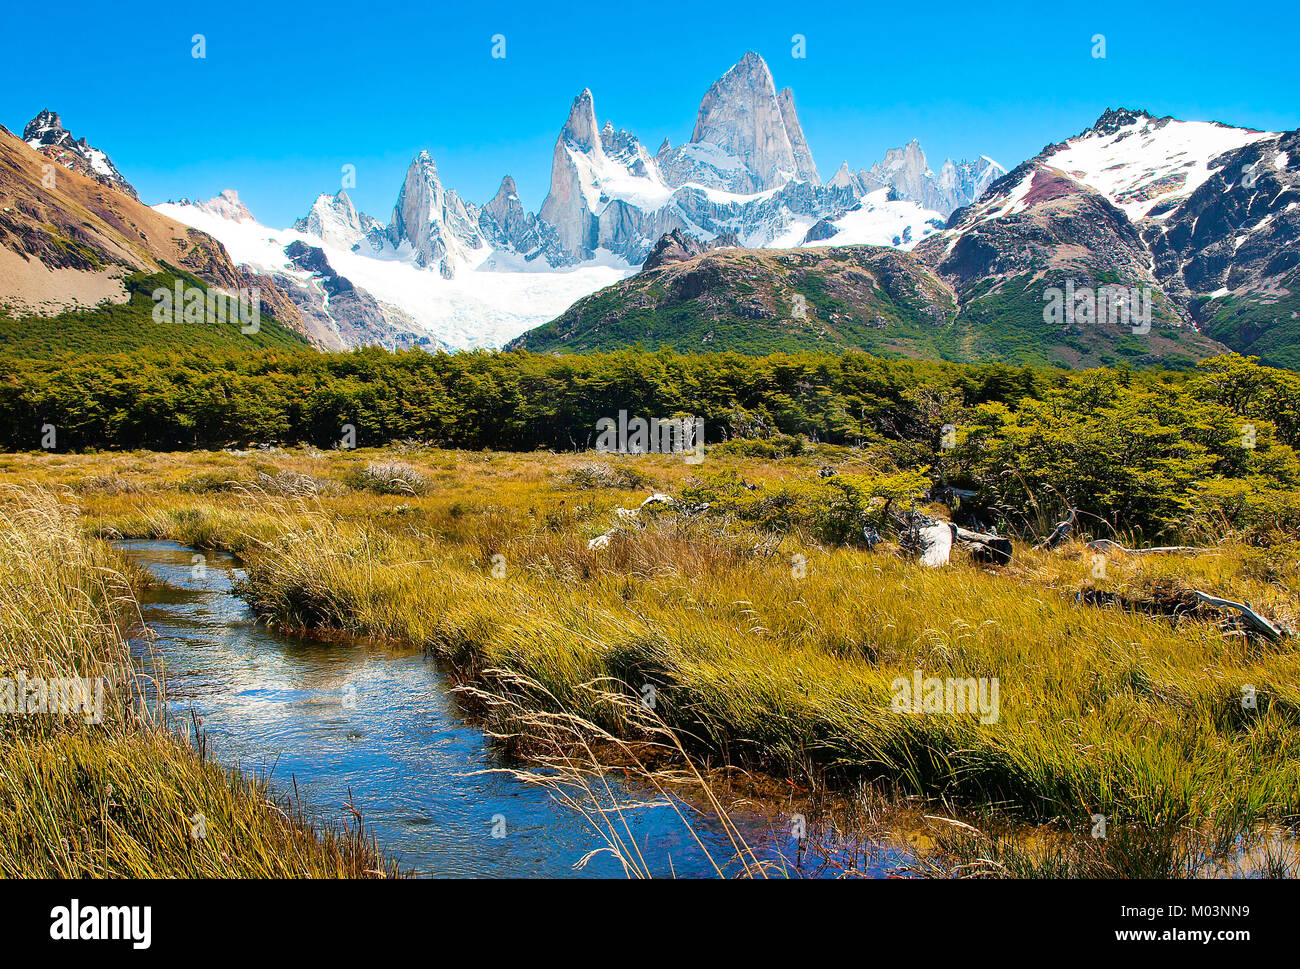 Beautiful landscape with Mt Fitz Roy in Los Glaciares National Park, Patagonia, Argentina, South America - Stock Image